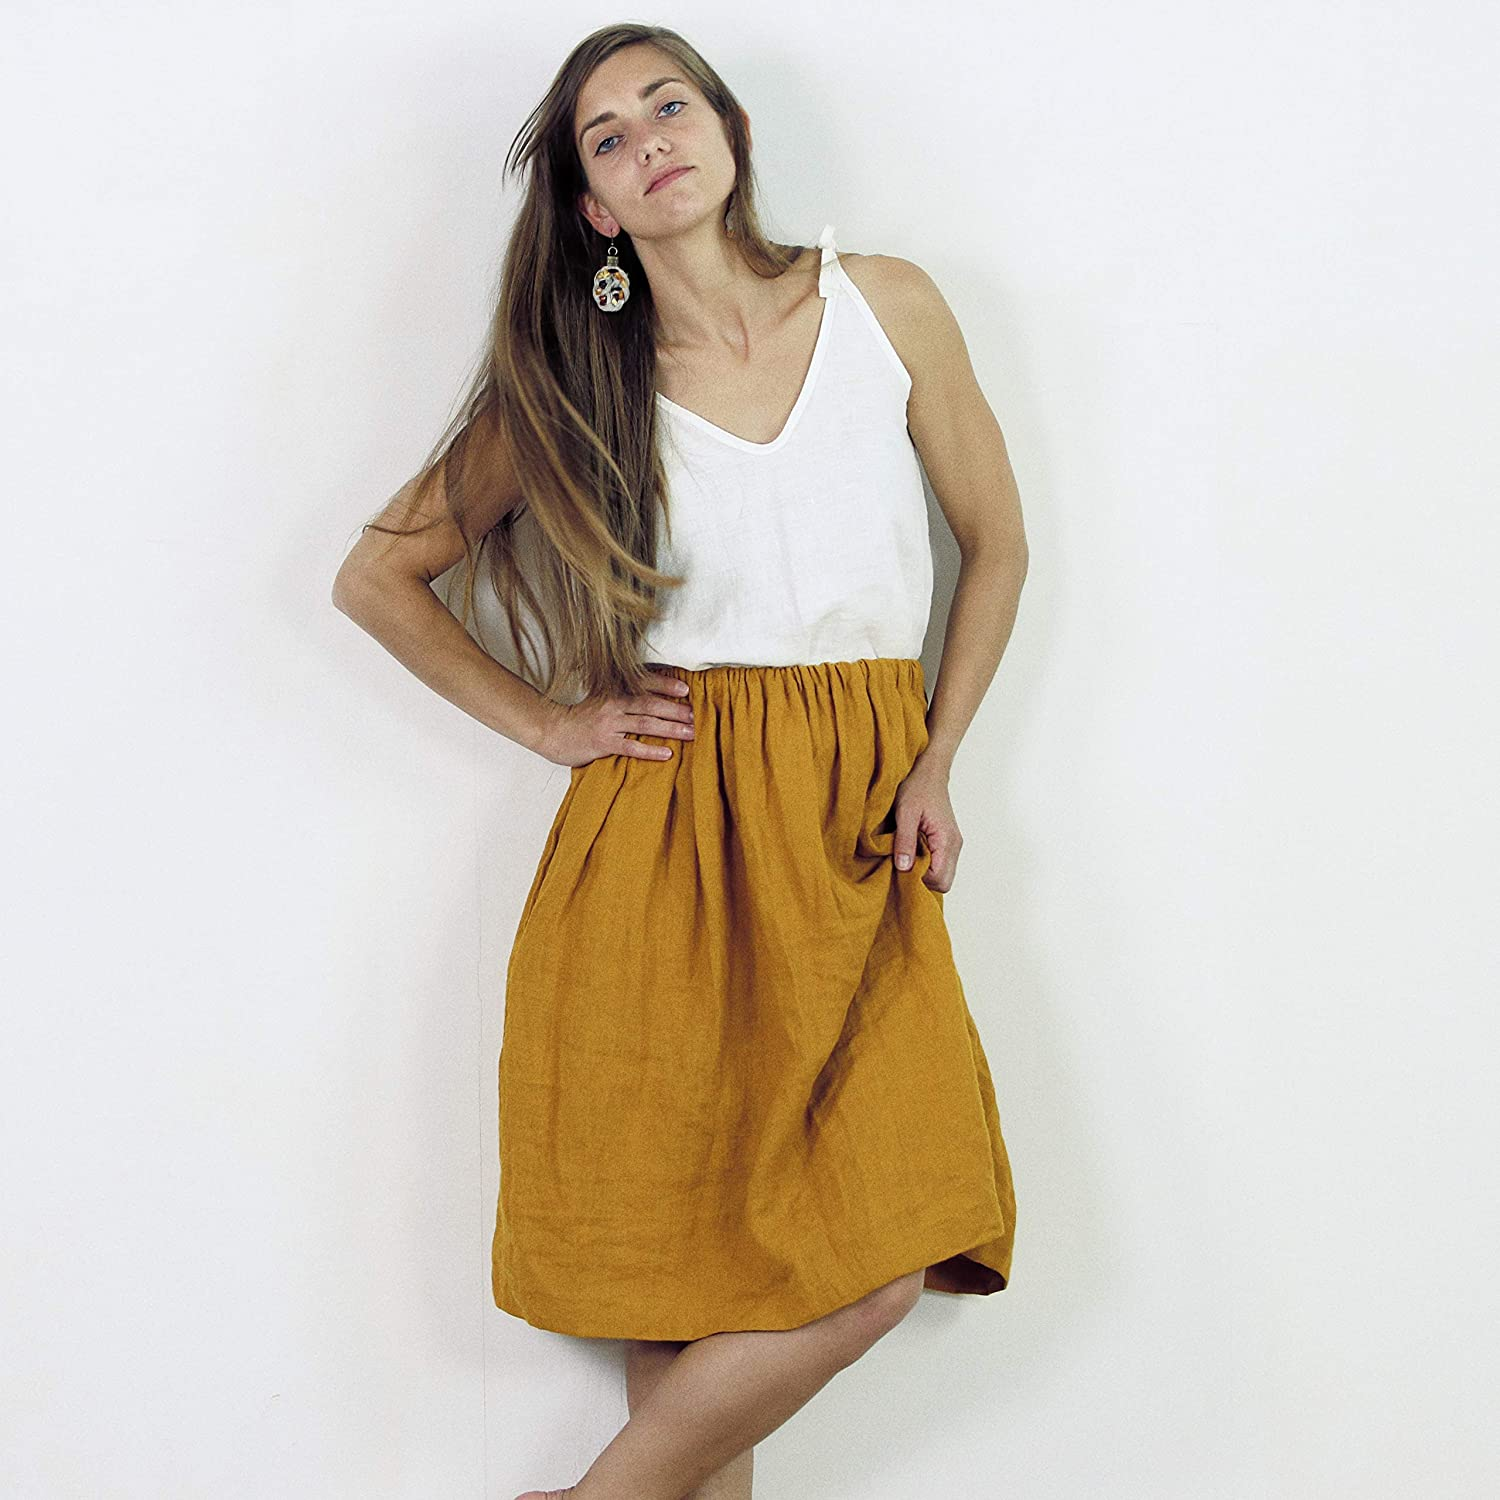 100% Linen Skirt with pockets, Aline washed linen skirt, Casual summer linen skirt with deep pockets, Midi soft, loose linen skirt